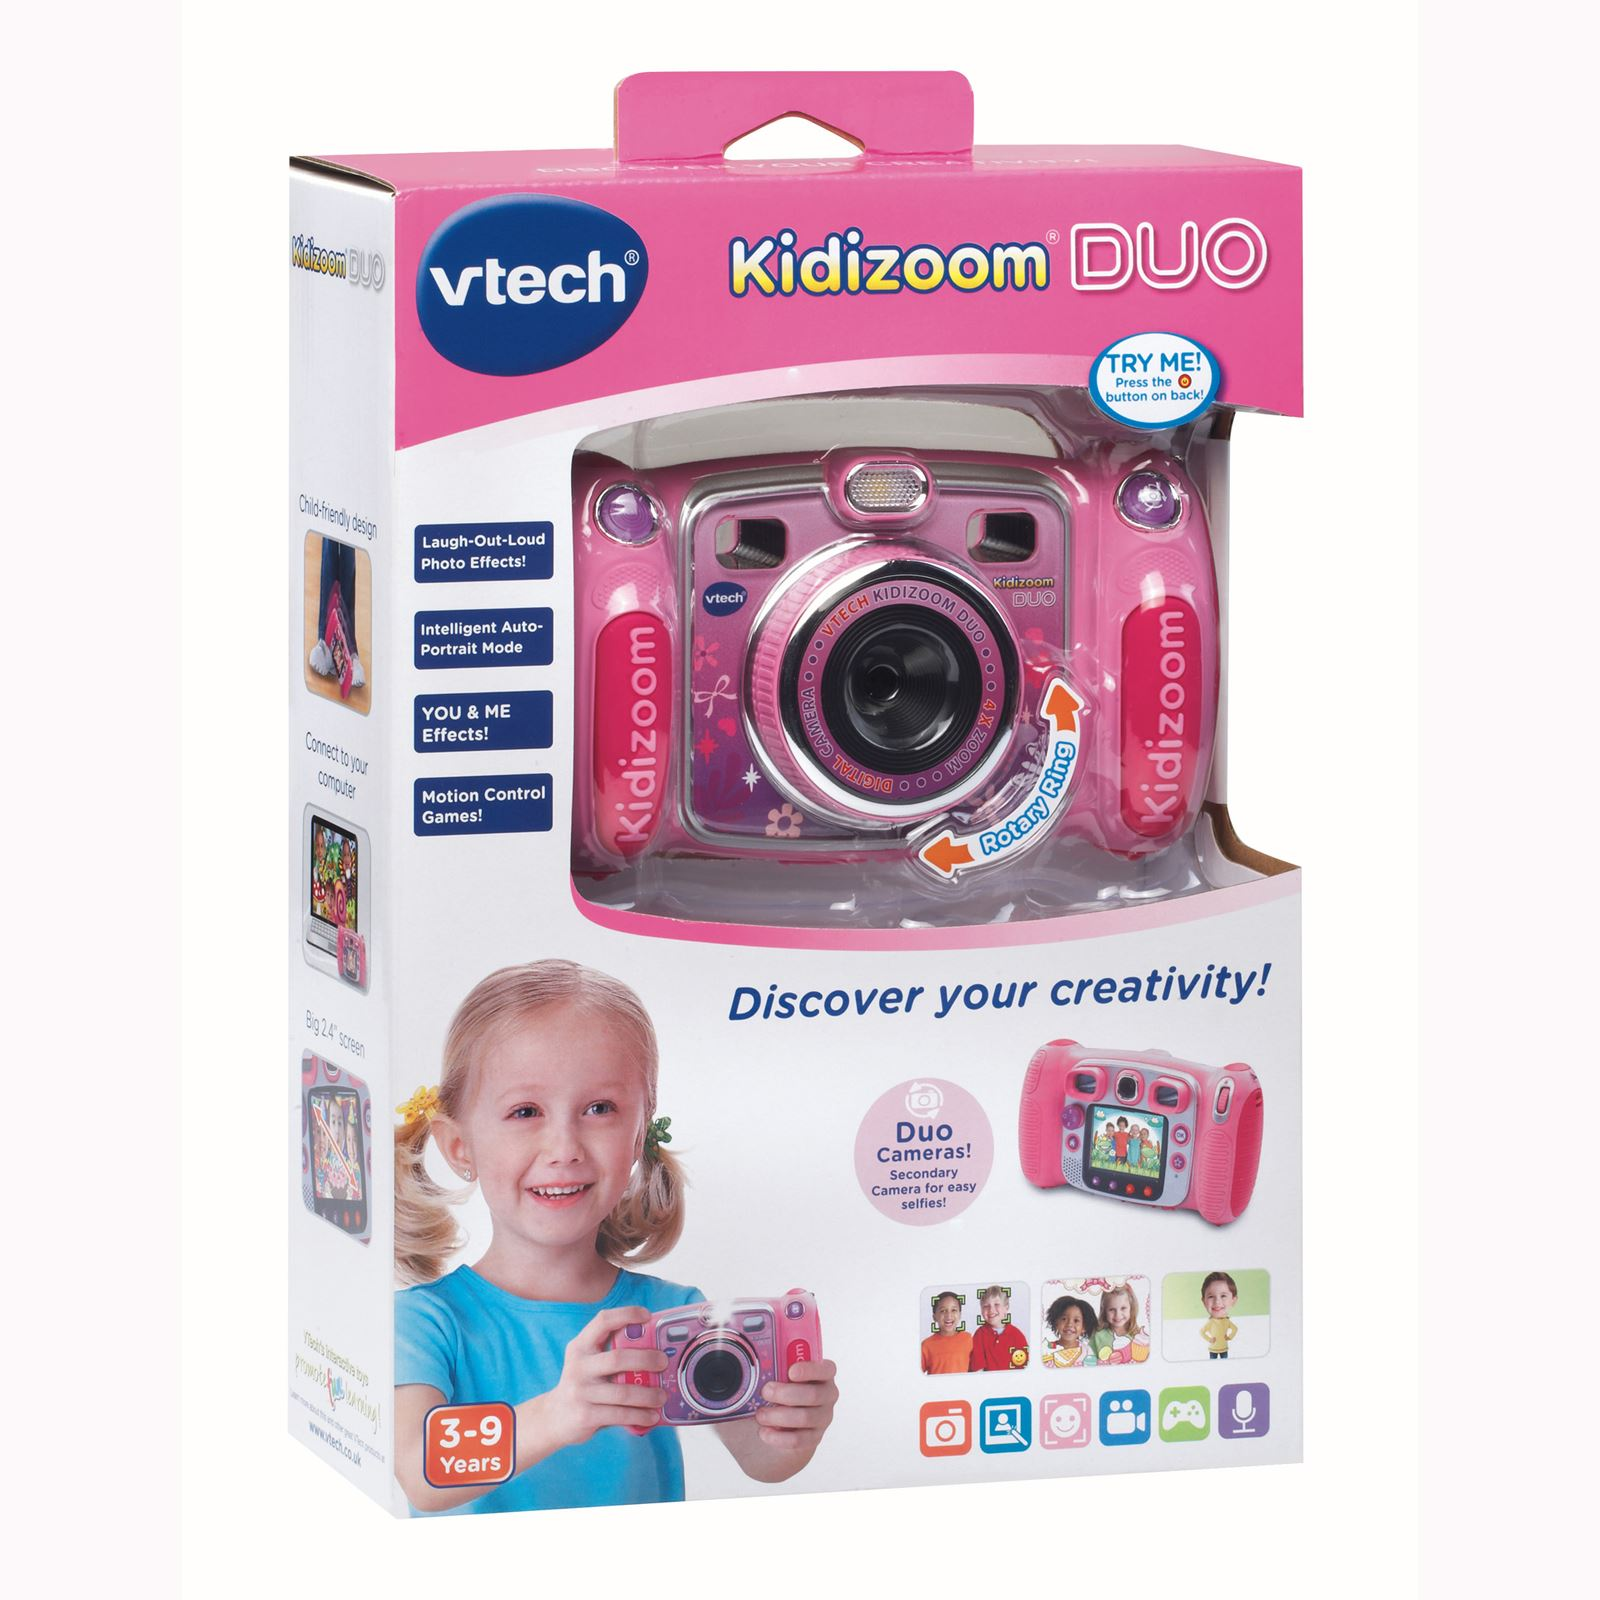 VTECH KIDIZOOM DUO KIDS DIGITAL CAMERAS IN BLUE AND PINK OR VTECH ...